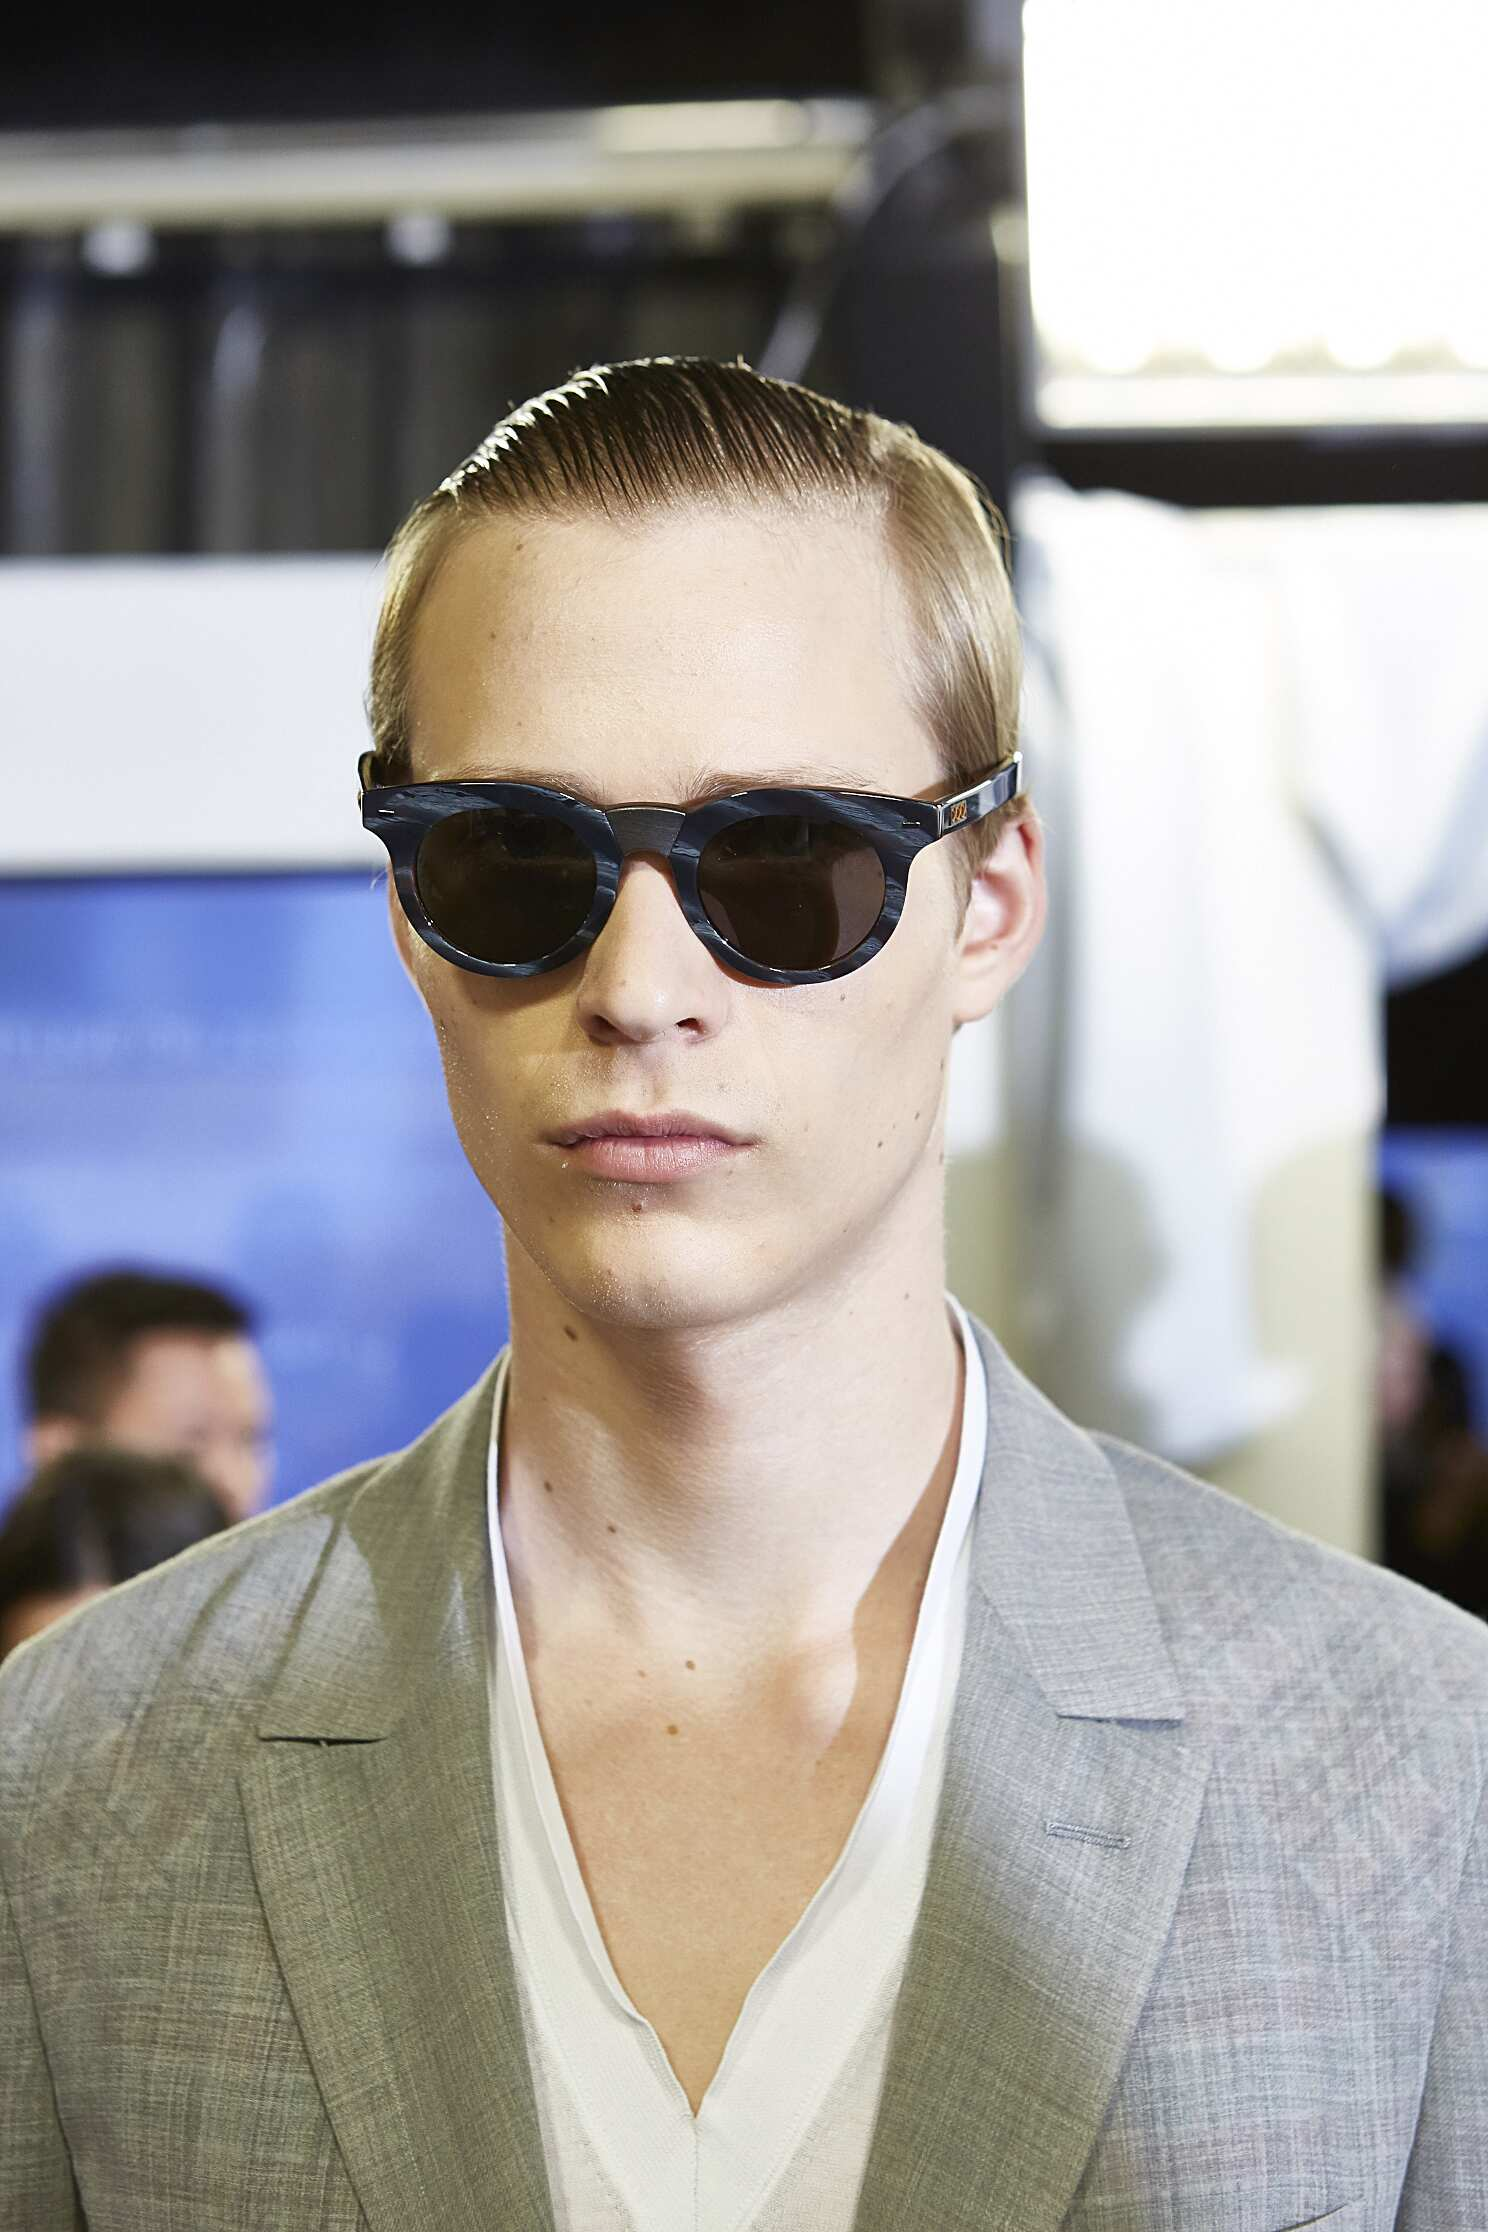 Backstage Ermenegildo Zegna Couture Model Milan